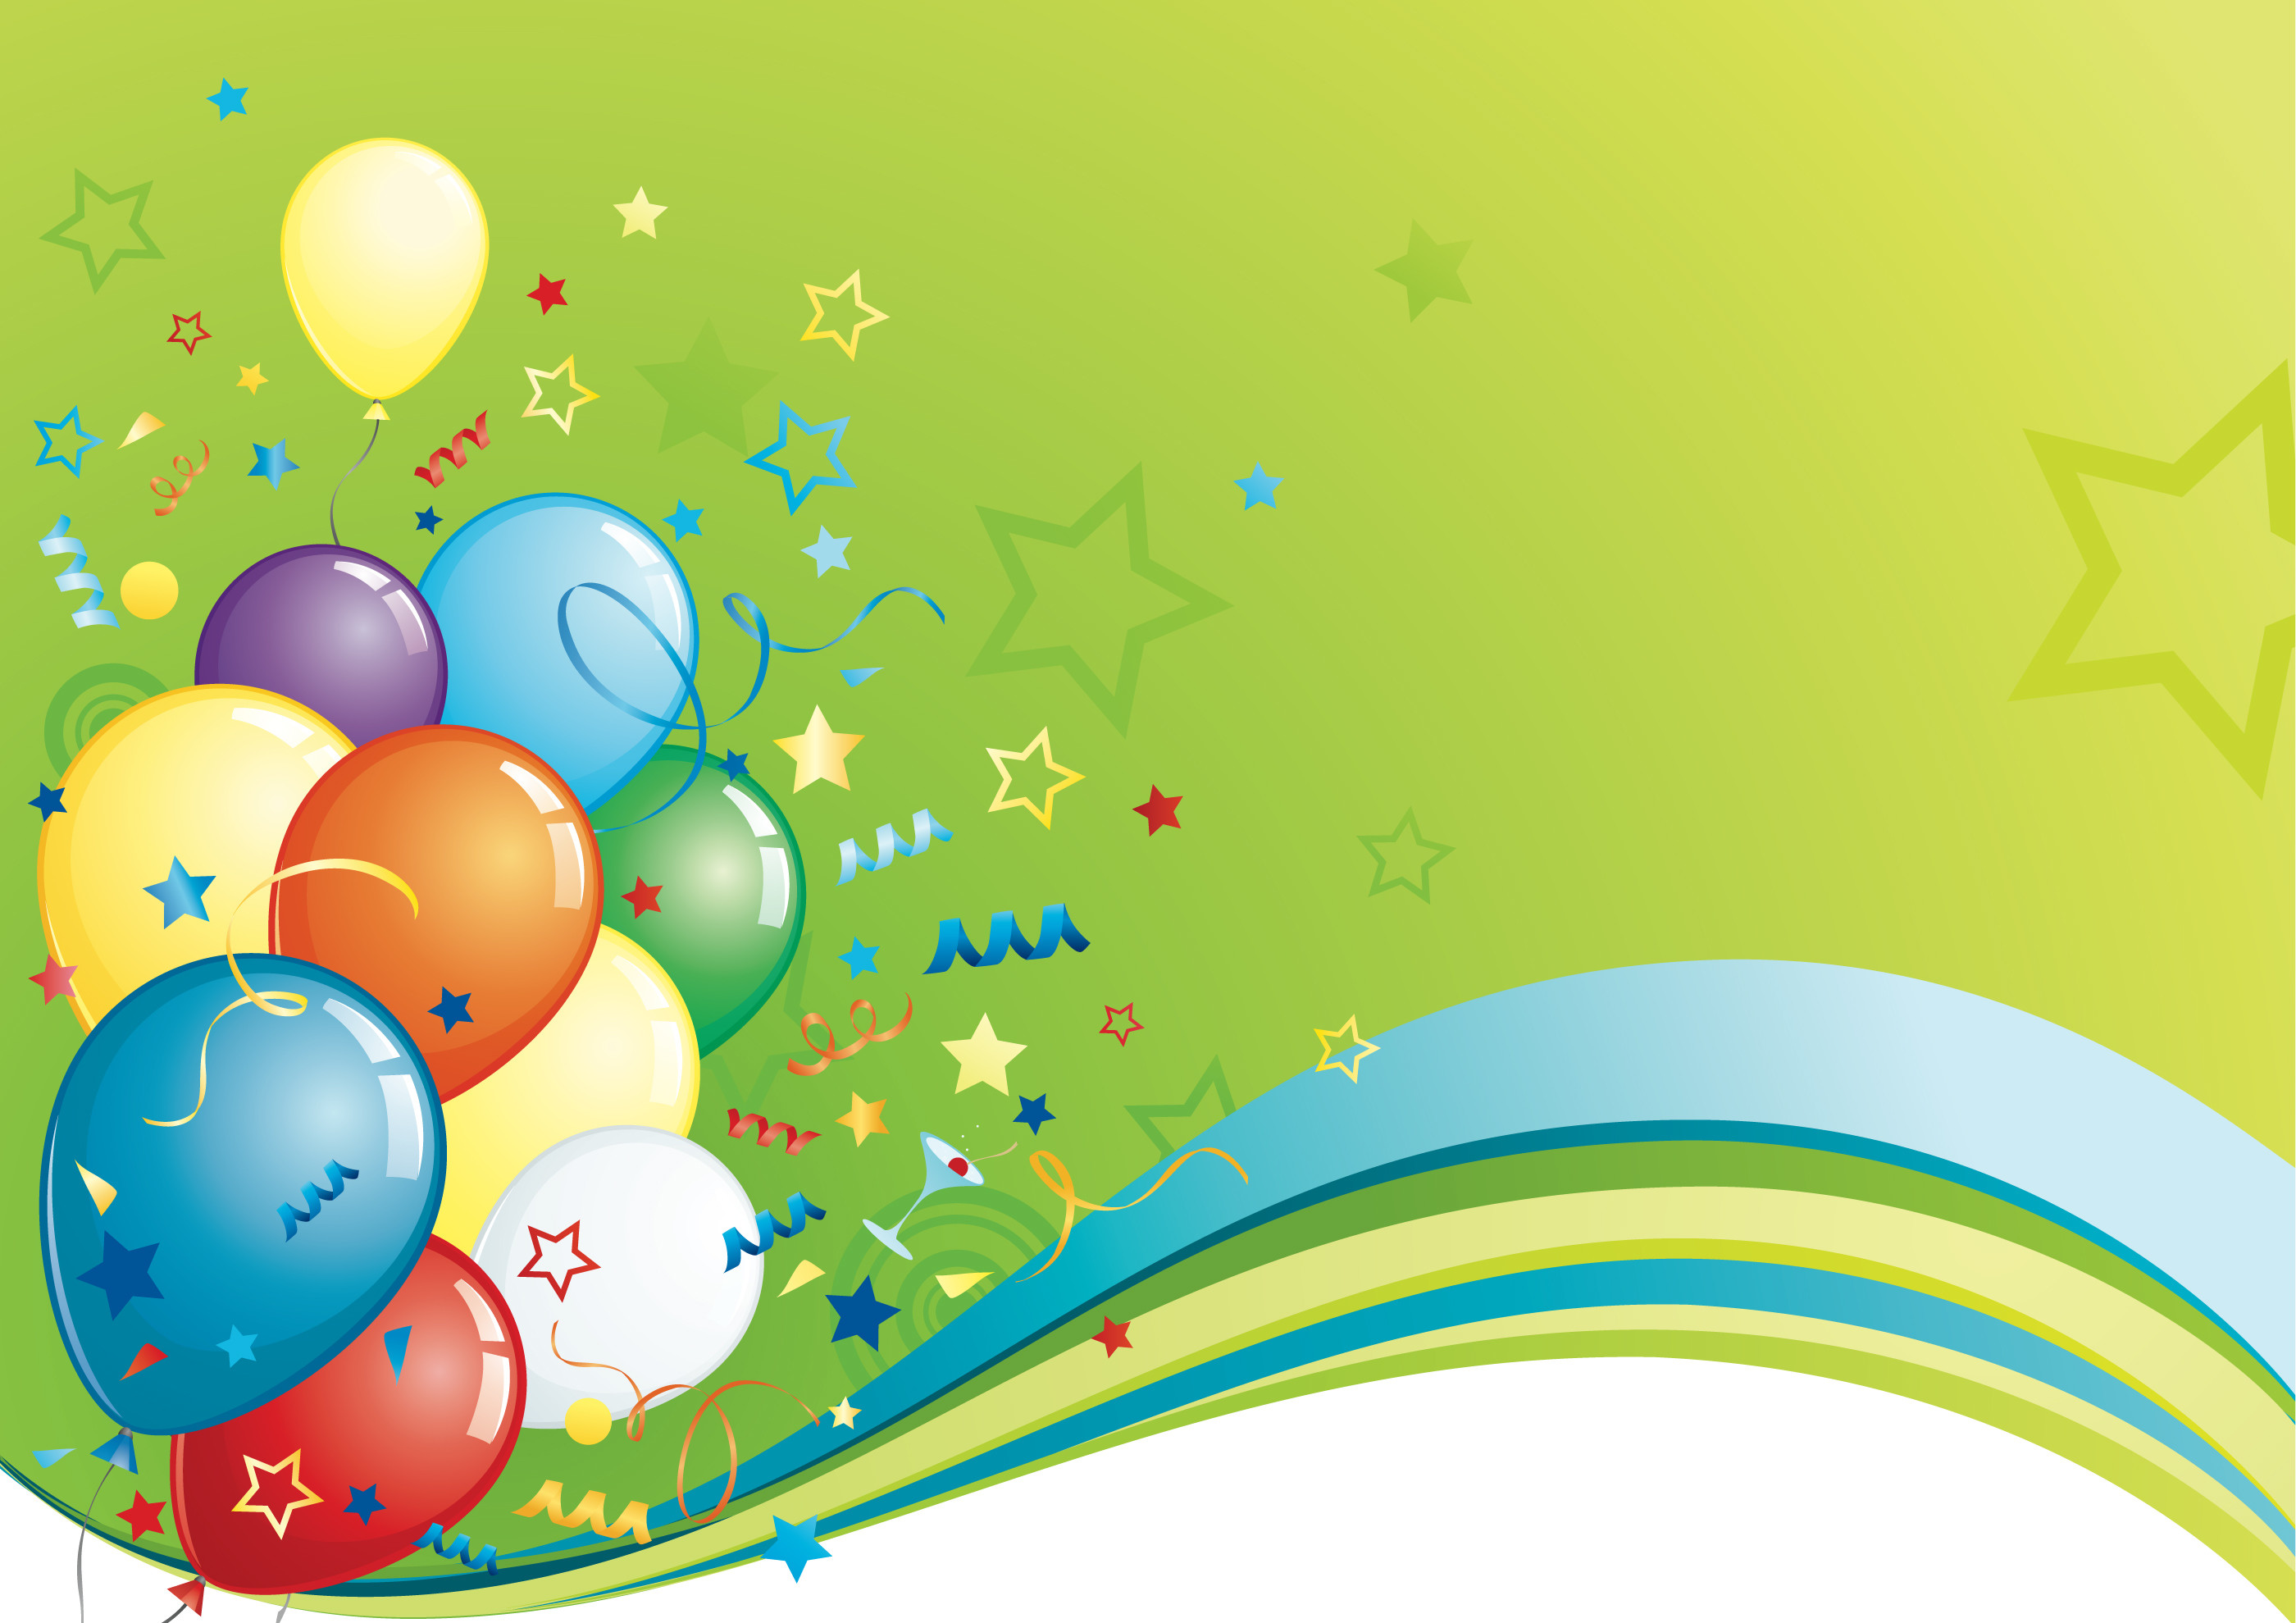 Hd birthday wallpapers 53 images - Happy birthday balloon images hd ...